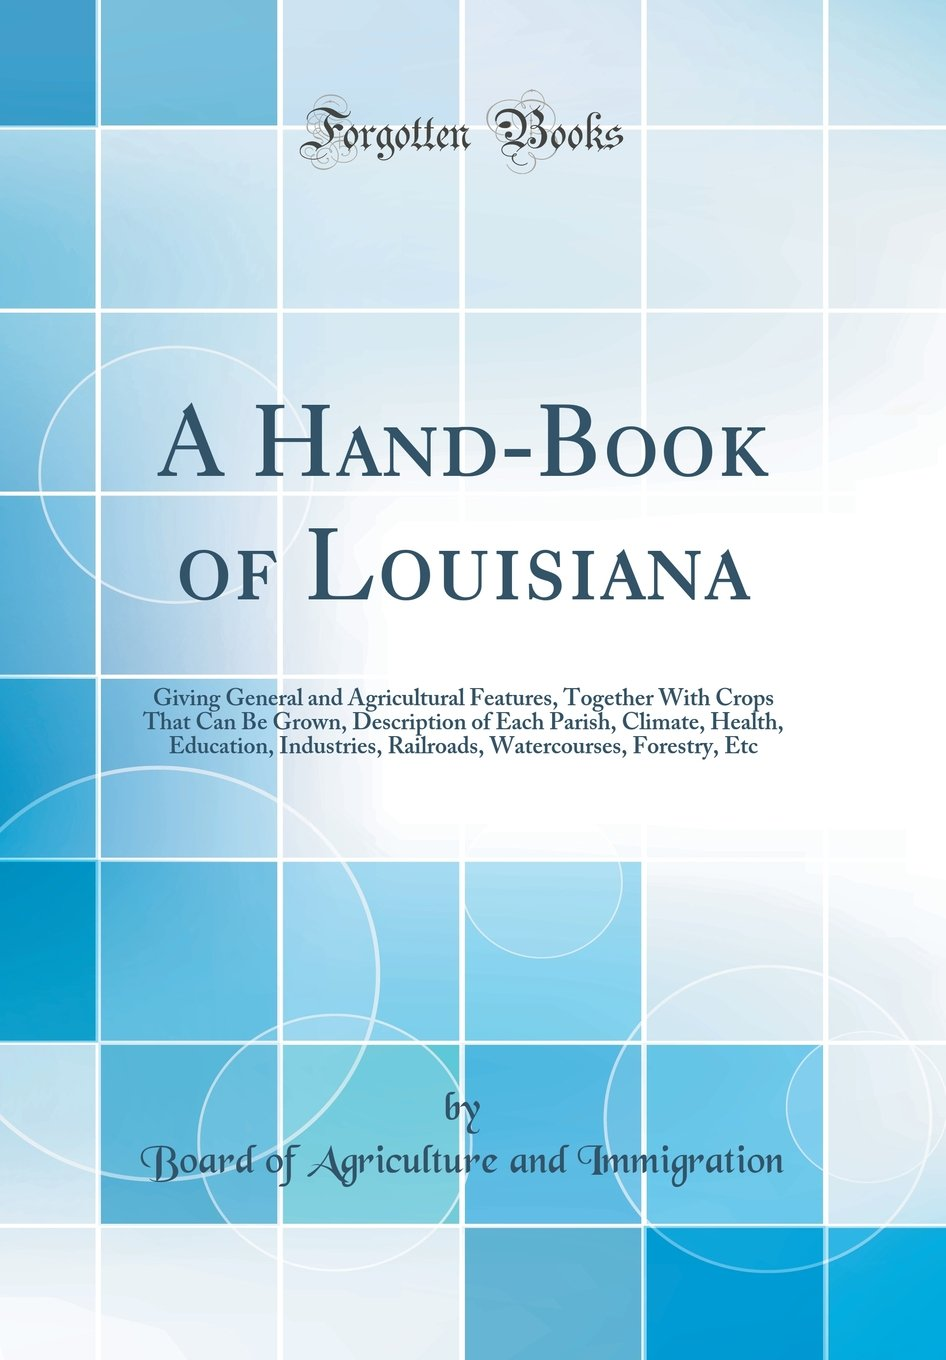 A Hand-Book of Louisiana: Giving General and Agricultural Features, Together With Crops That Can Be Grown, Description of Each Parish, Climate, ... Watercourses, Forestry, Etc (Classic Reprint) pdf epub